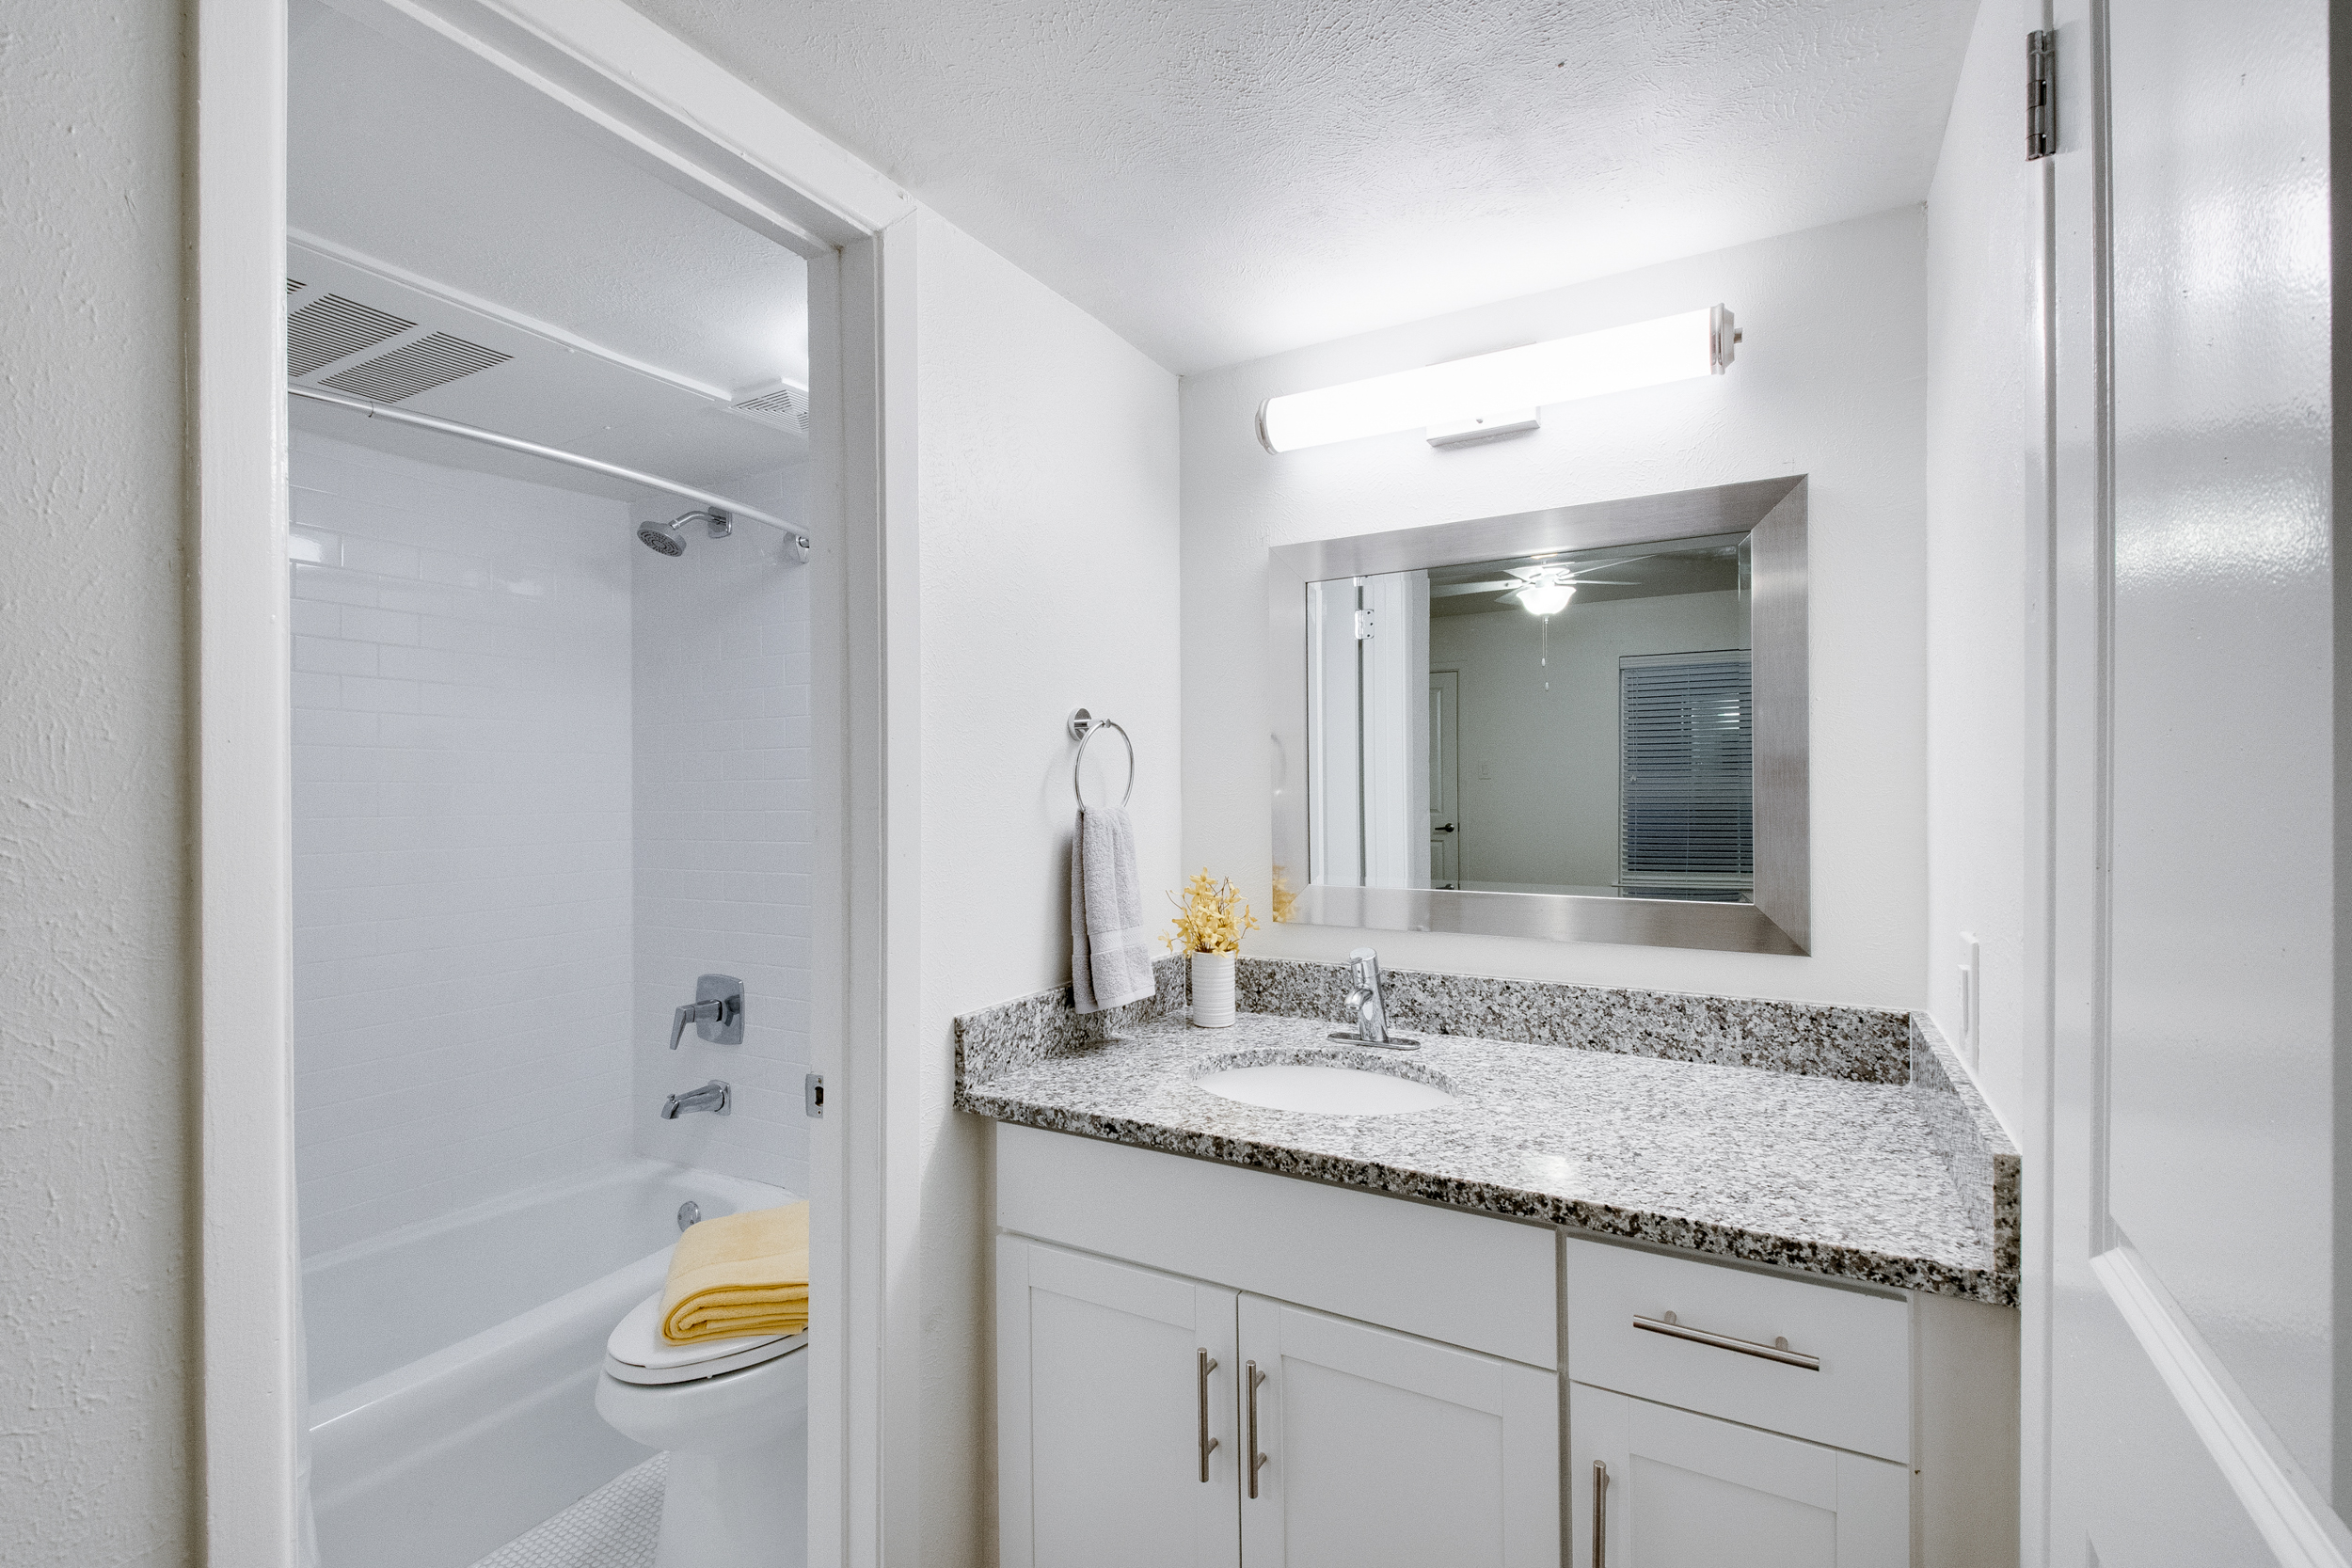 Interior view of a bathroom with white cabinets, grey granite countertops, and a door leading to a toilet and shower